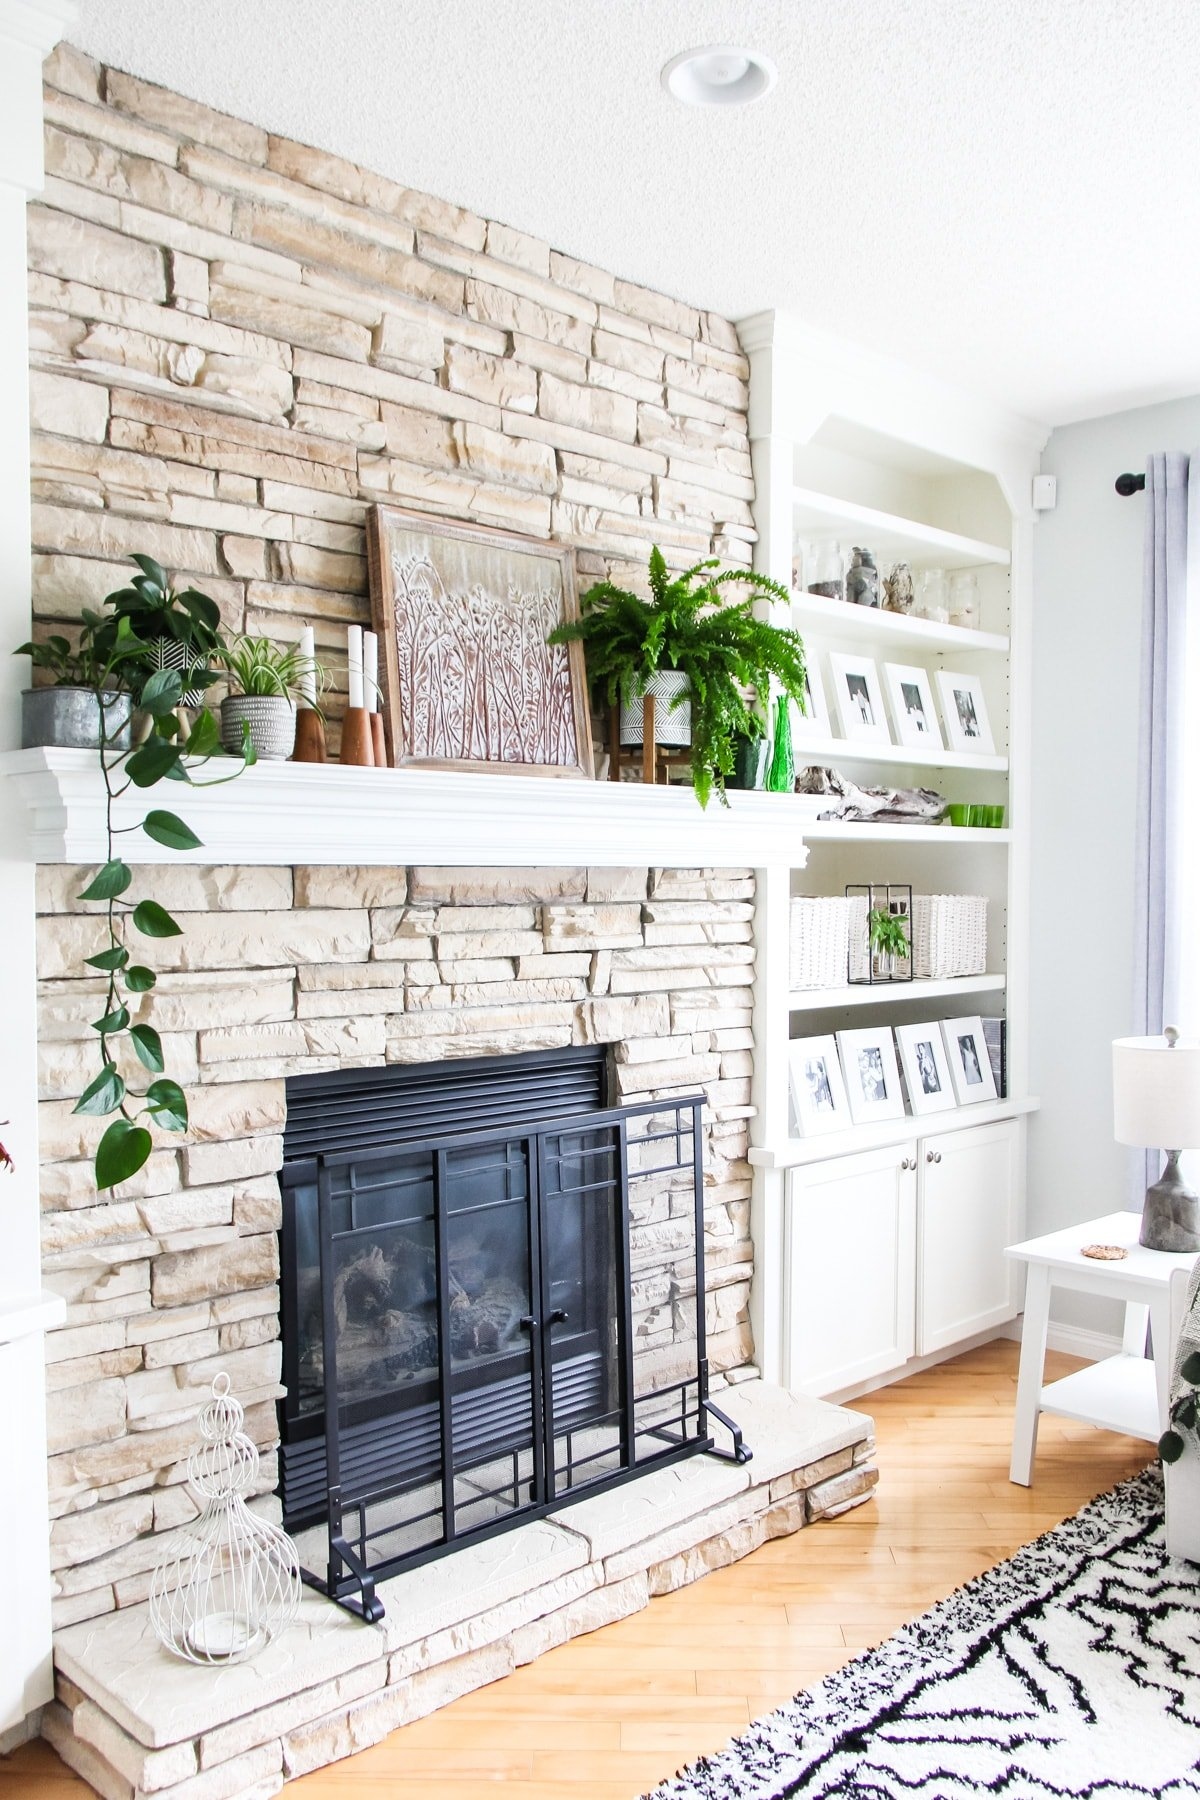 a side view of a light stone fireplace decorated with plants, candles and art. there are shelves filled with white framed pictures, baskets and pops of green.